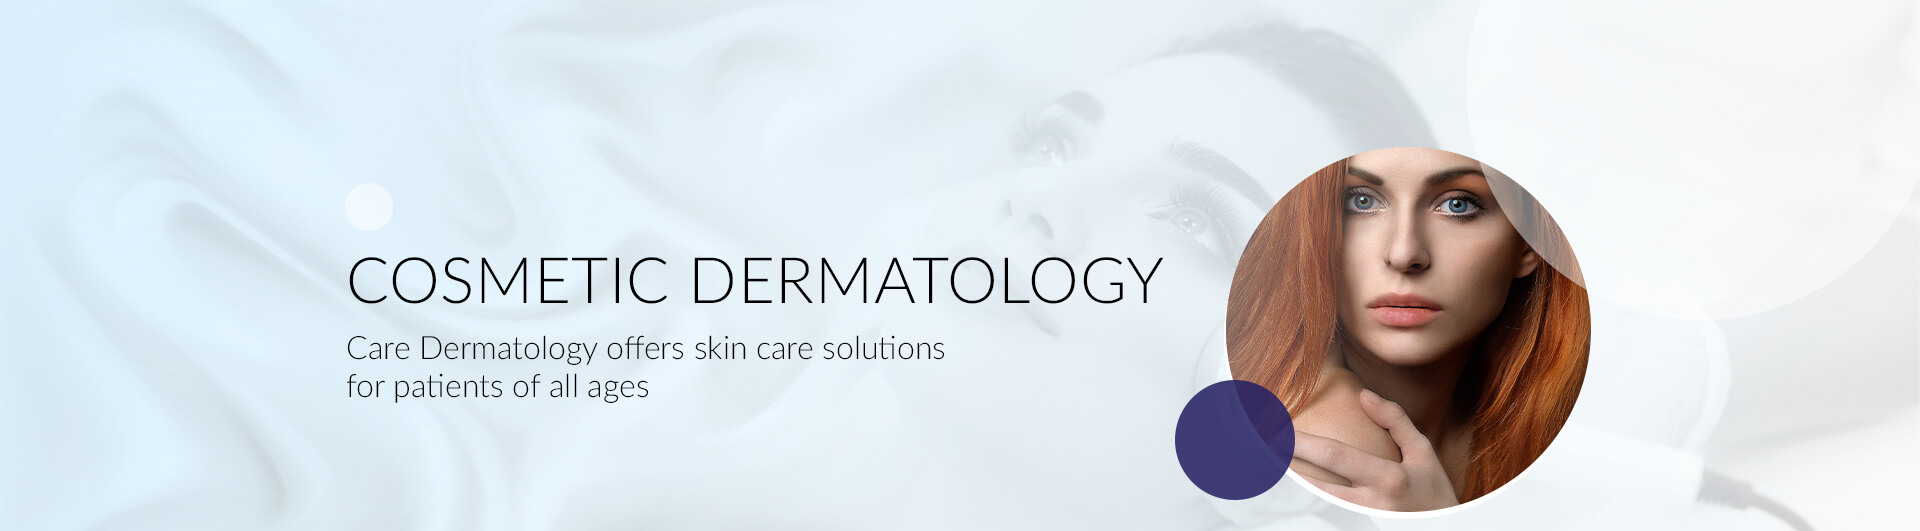 Cosmetic Dermatology In Florida